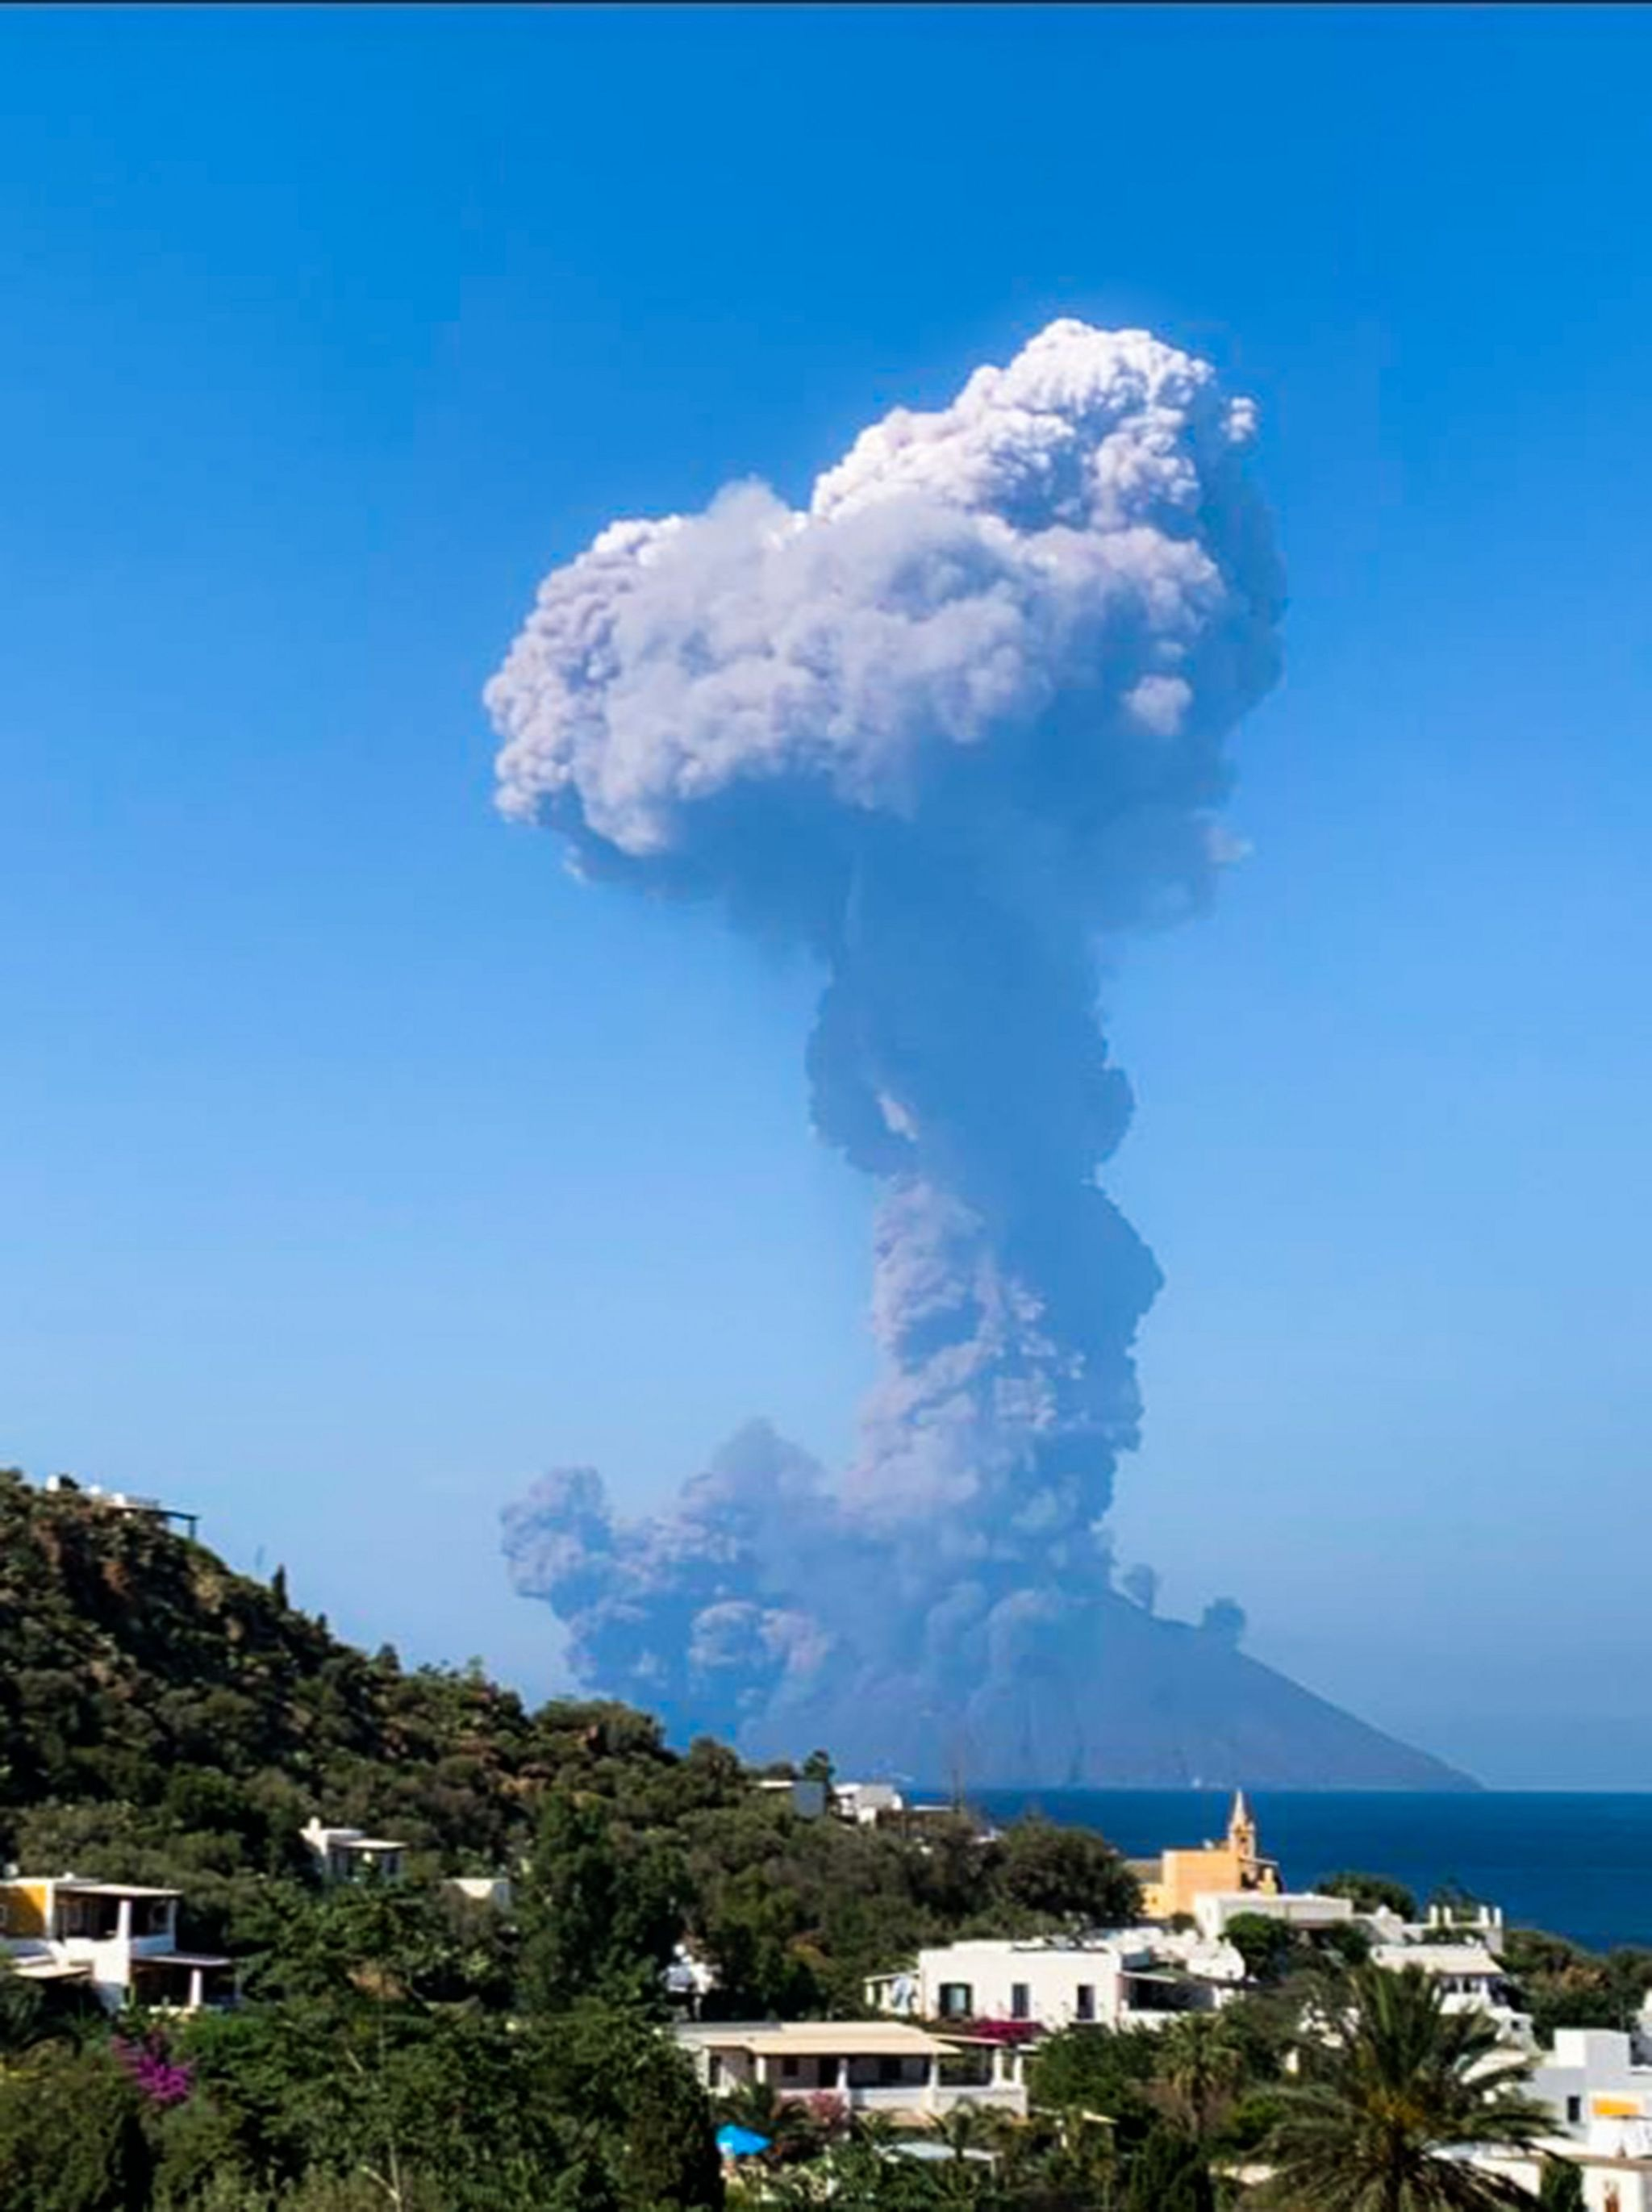 Ash rising from the volcano with the island of Panarea in the front